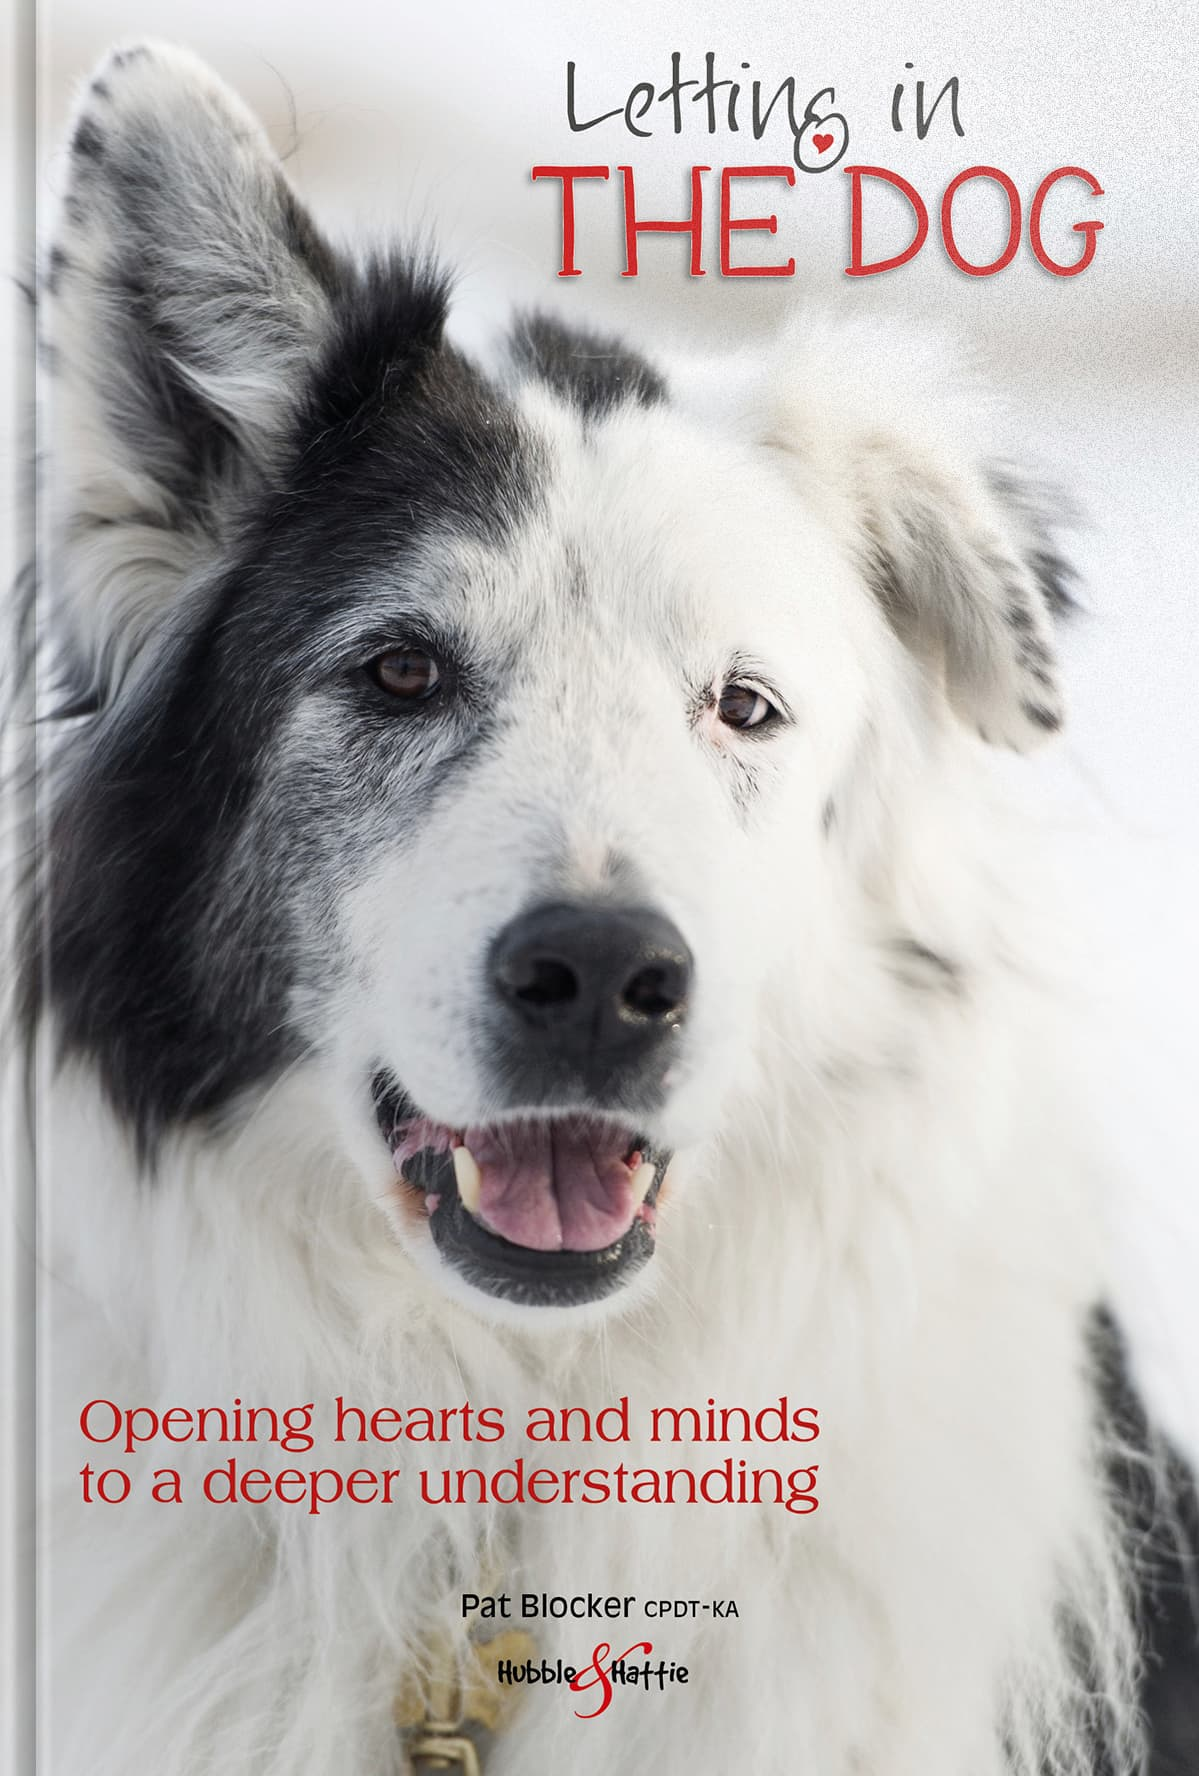 Letting in the dog –Opening hearts and minds to a deeper understanding